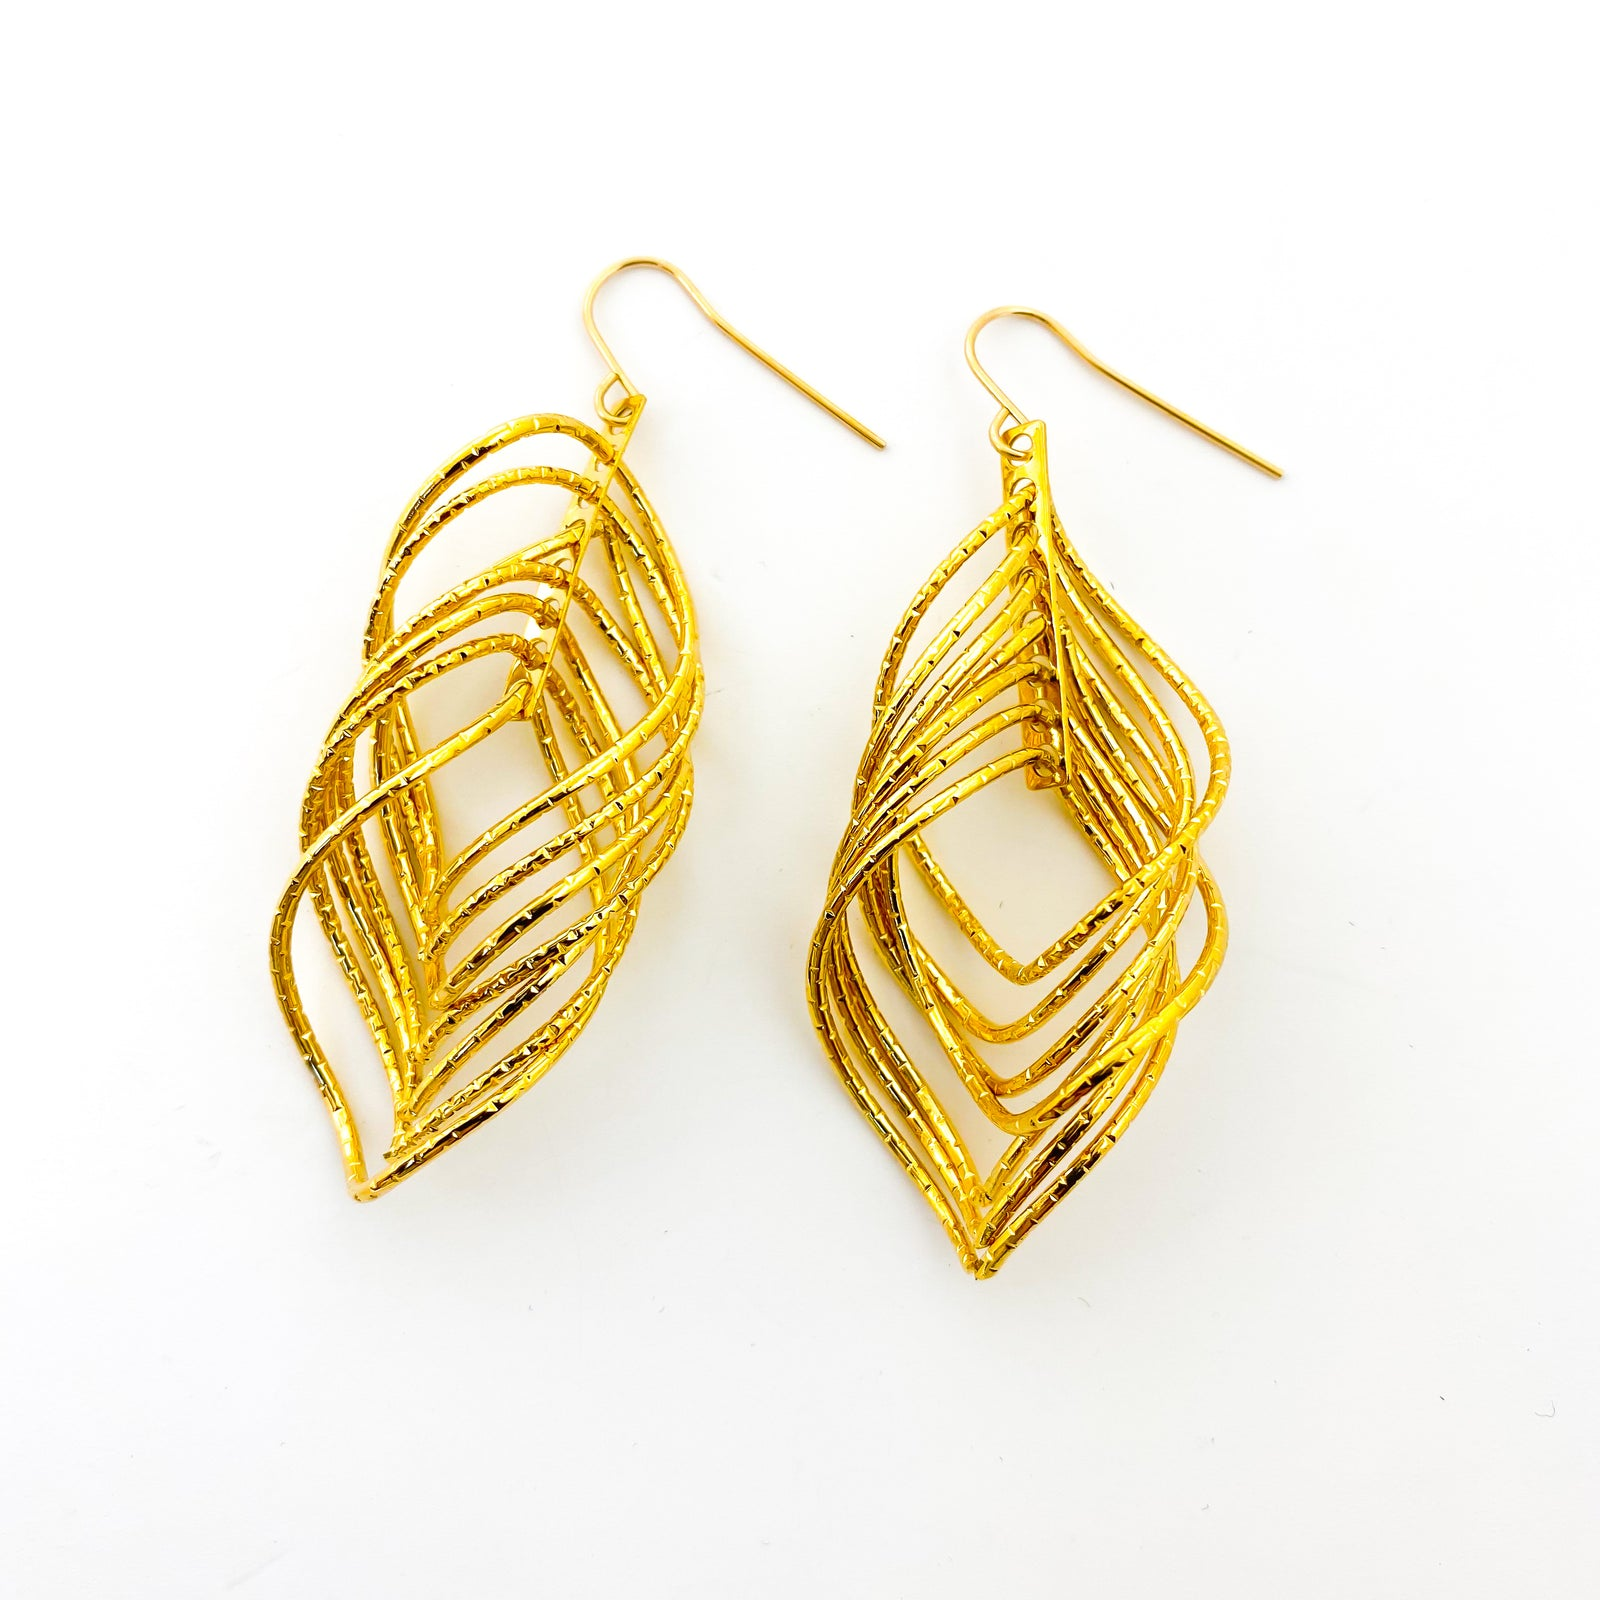 STARDUST SPIRAL EARRINGS | 18K GOLD PLATED